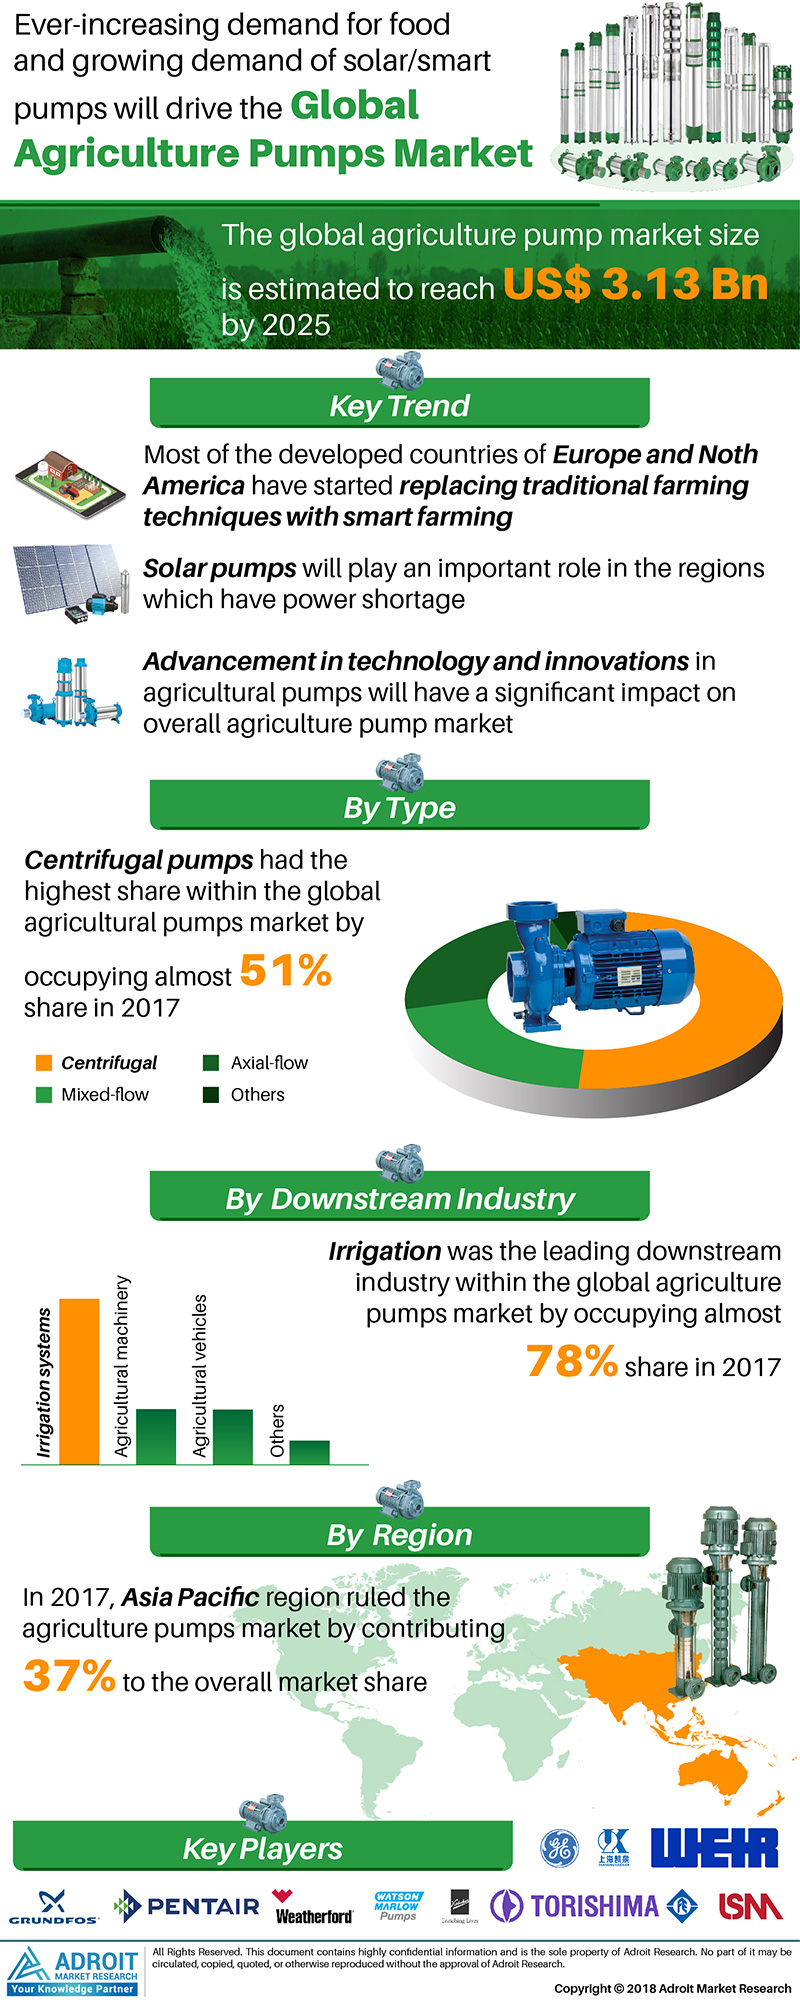 Global Agriculture Pumps Market Size 2017 By Type, Downstream Industry, Applications, Region and Forecast 2018 to 2025